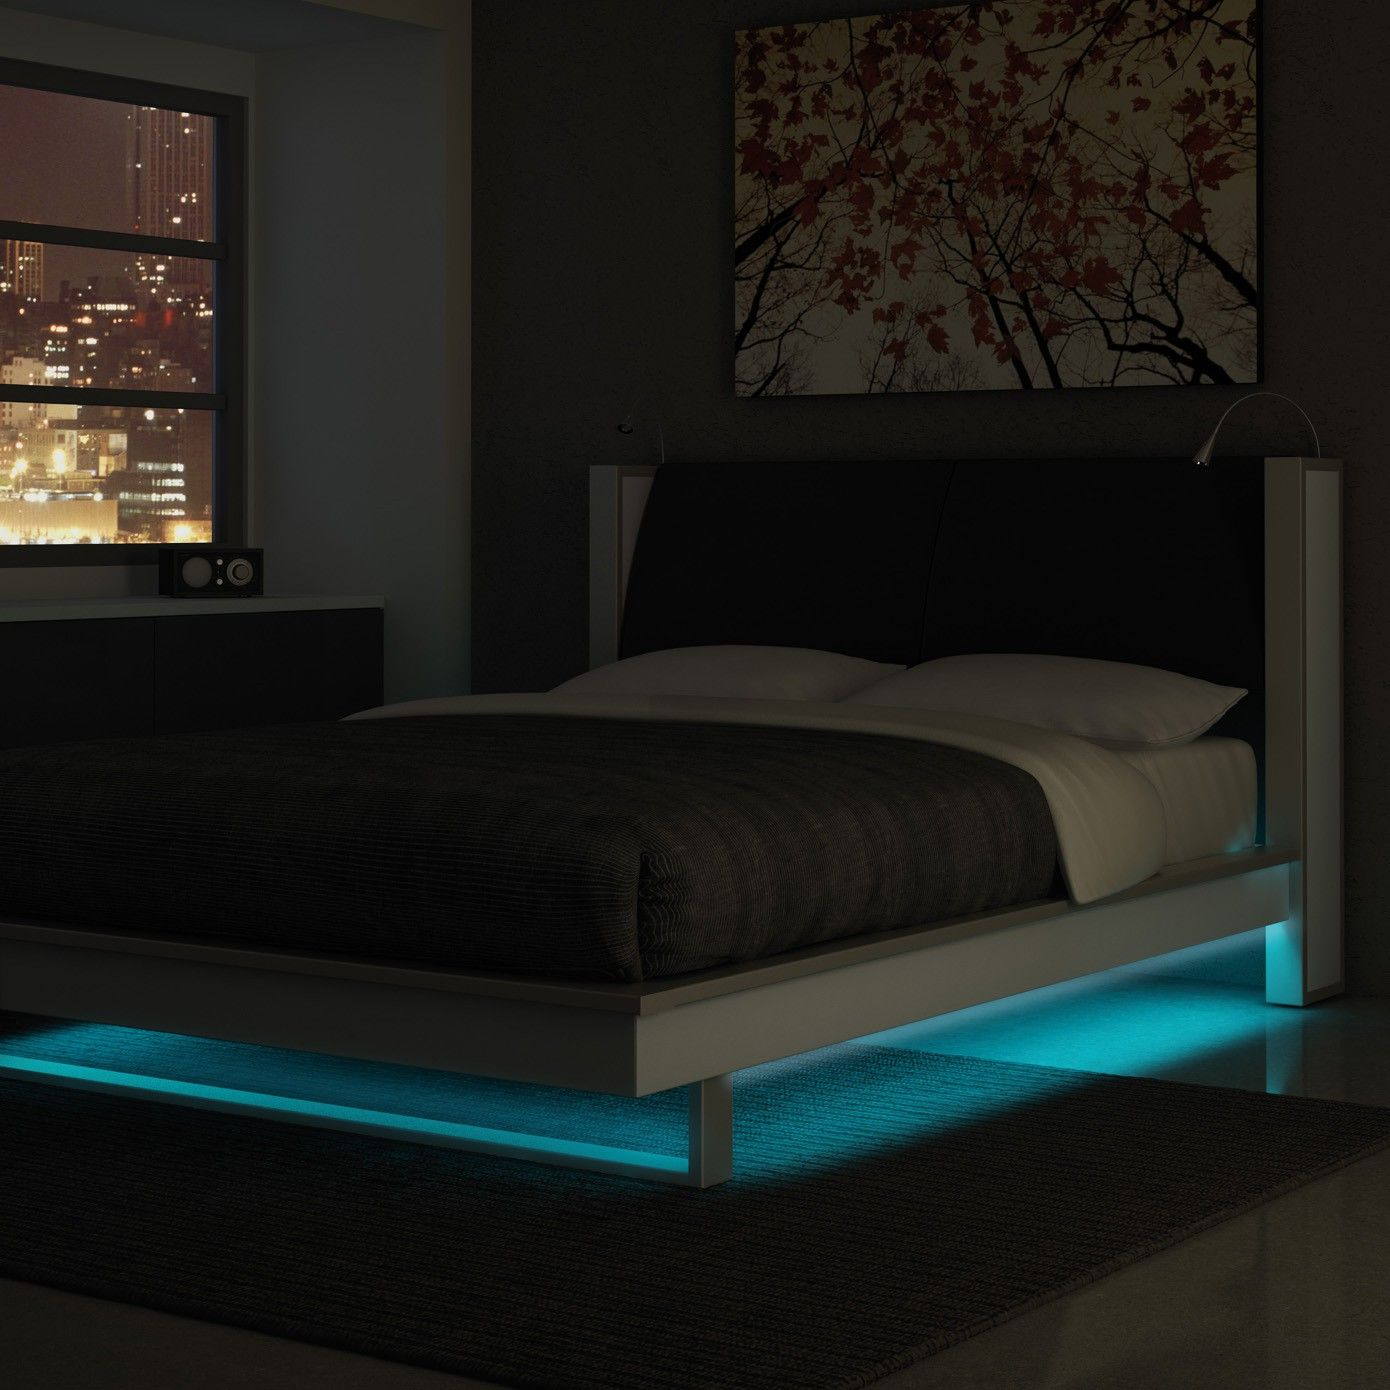 122 Reference Of Led Light Bedroom Furniture In 2020 Bed With Led Lights Furniture Bedroom Lighting